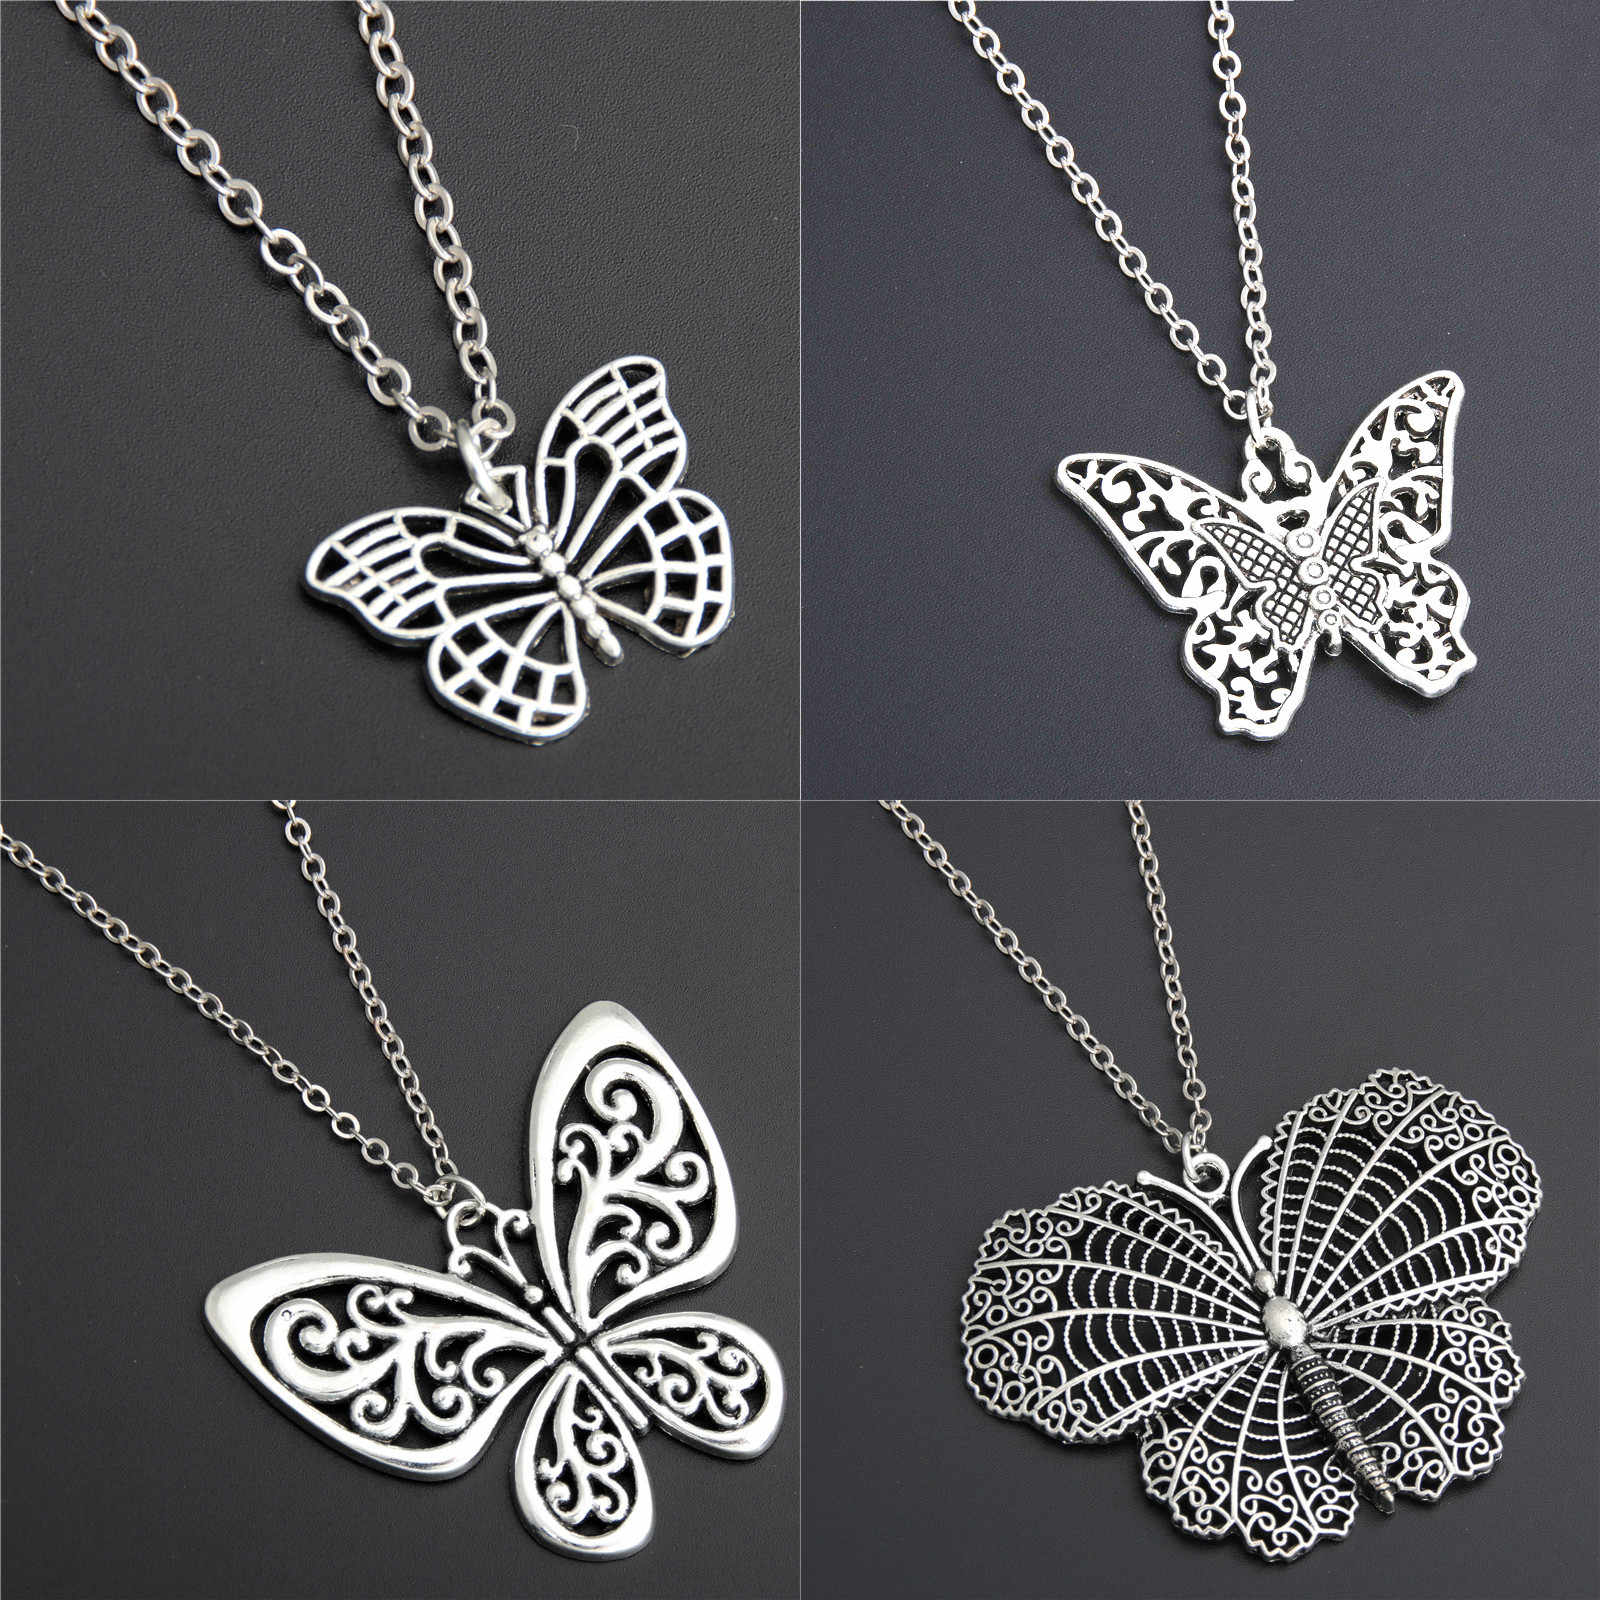 1pc 2019 New Women's Jewelry Butterfly Pendant & Necklace Chain Women Lovely Butterfly Pendant Chain Necklace Jewelry